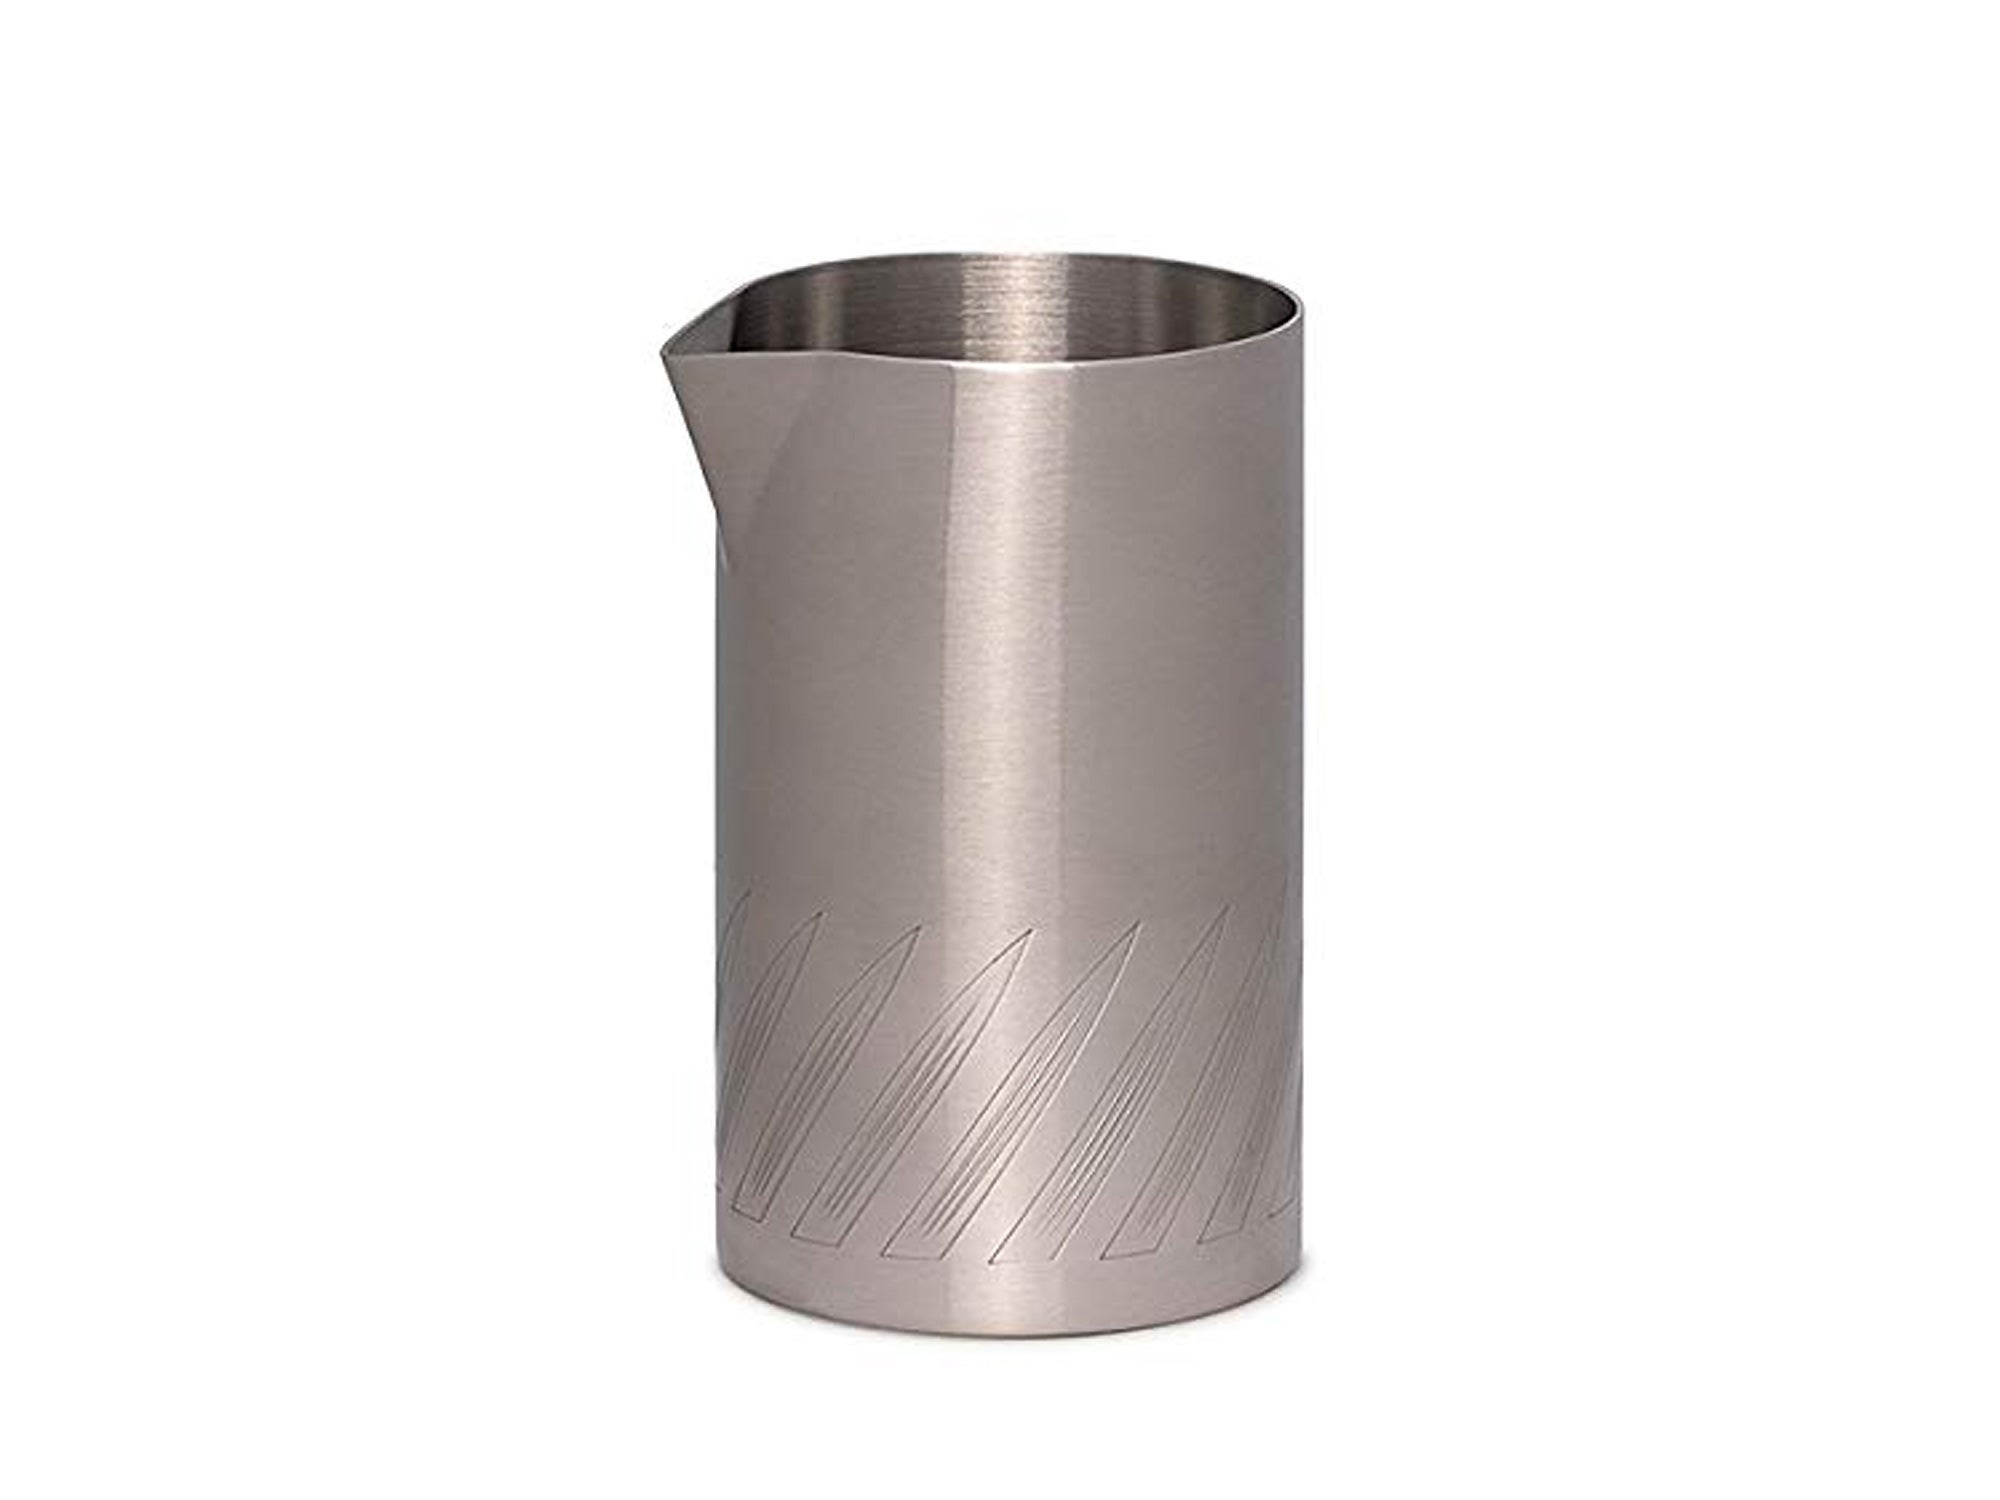 Cocktail Kingdom stainless steel cocktail mixing tin